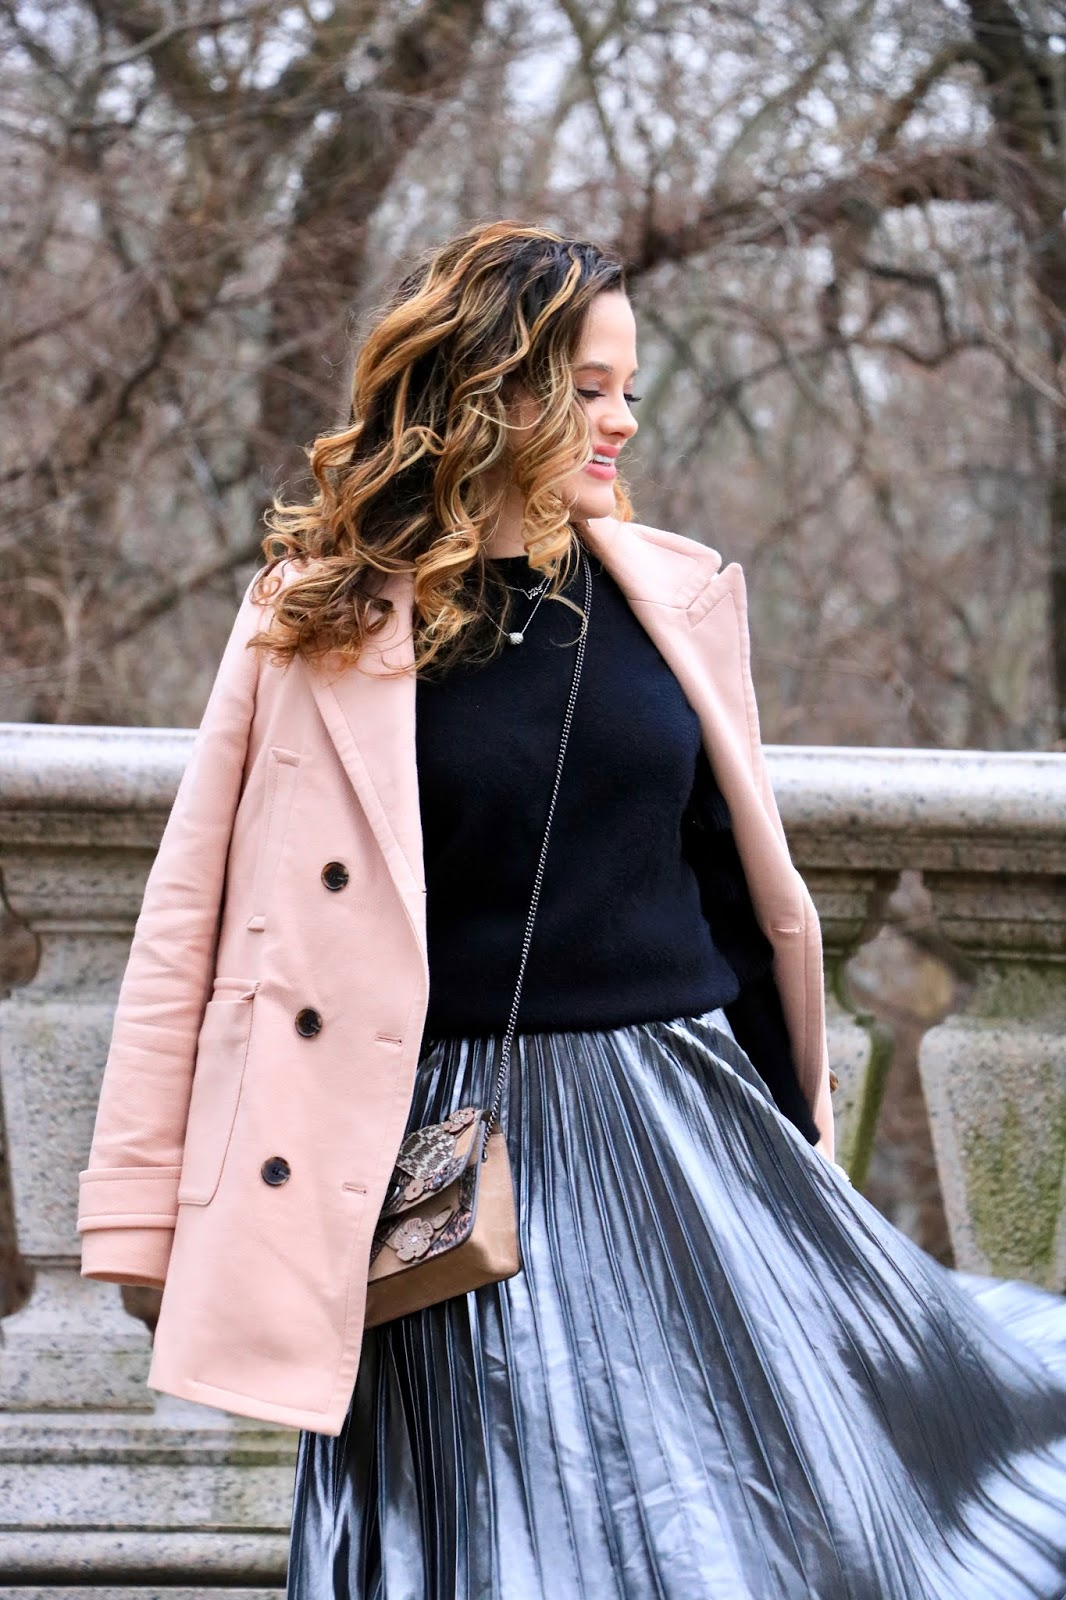 Nyc fashion blogger Kathleen Harper's winter street style